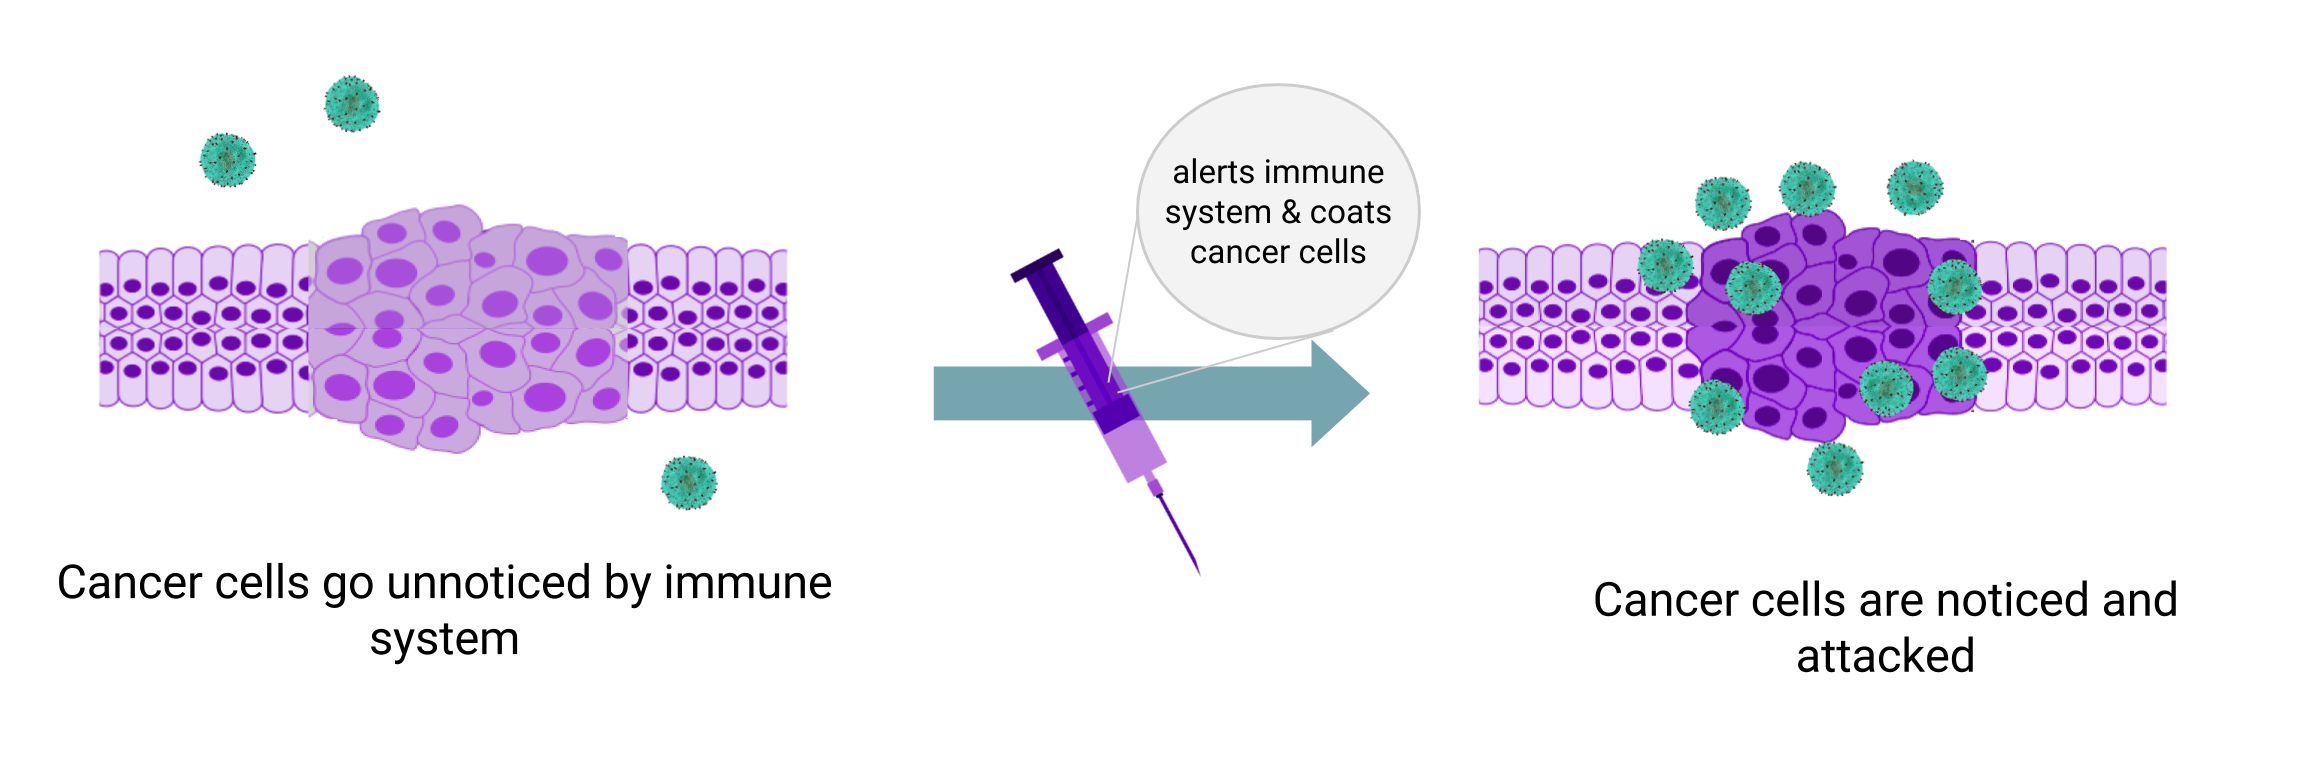 Immunoengineering a Better Cancer Treatment